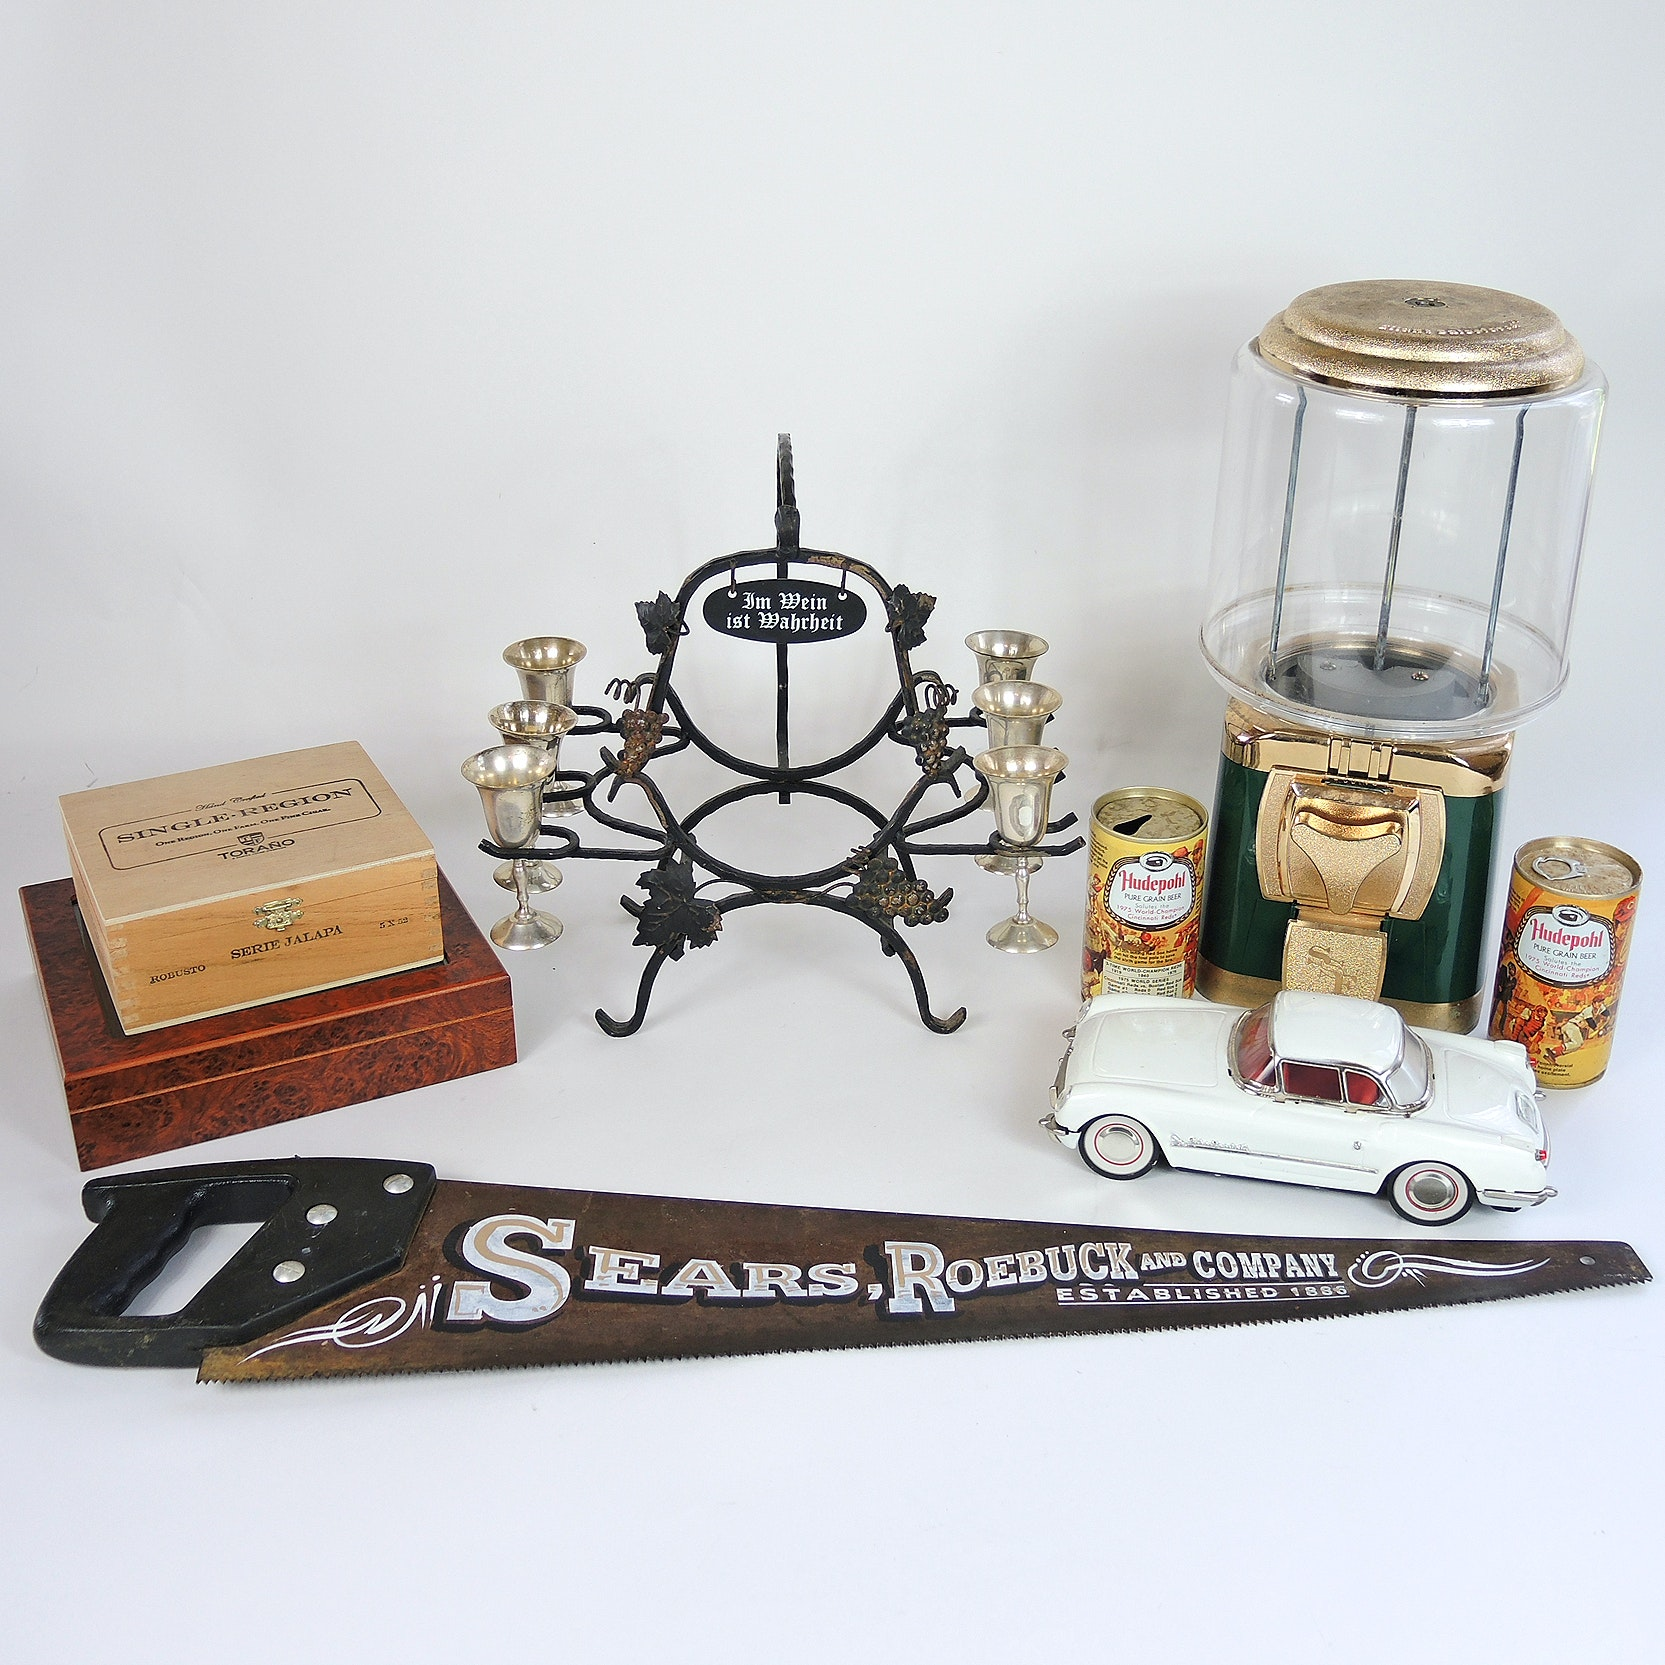 Vintage and Modern Decor and Collectibles